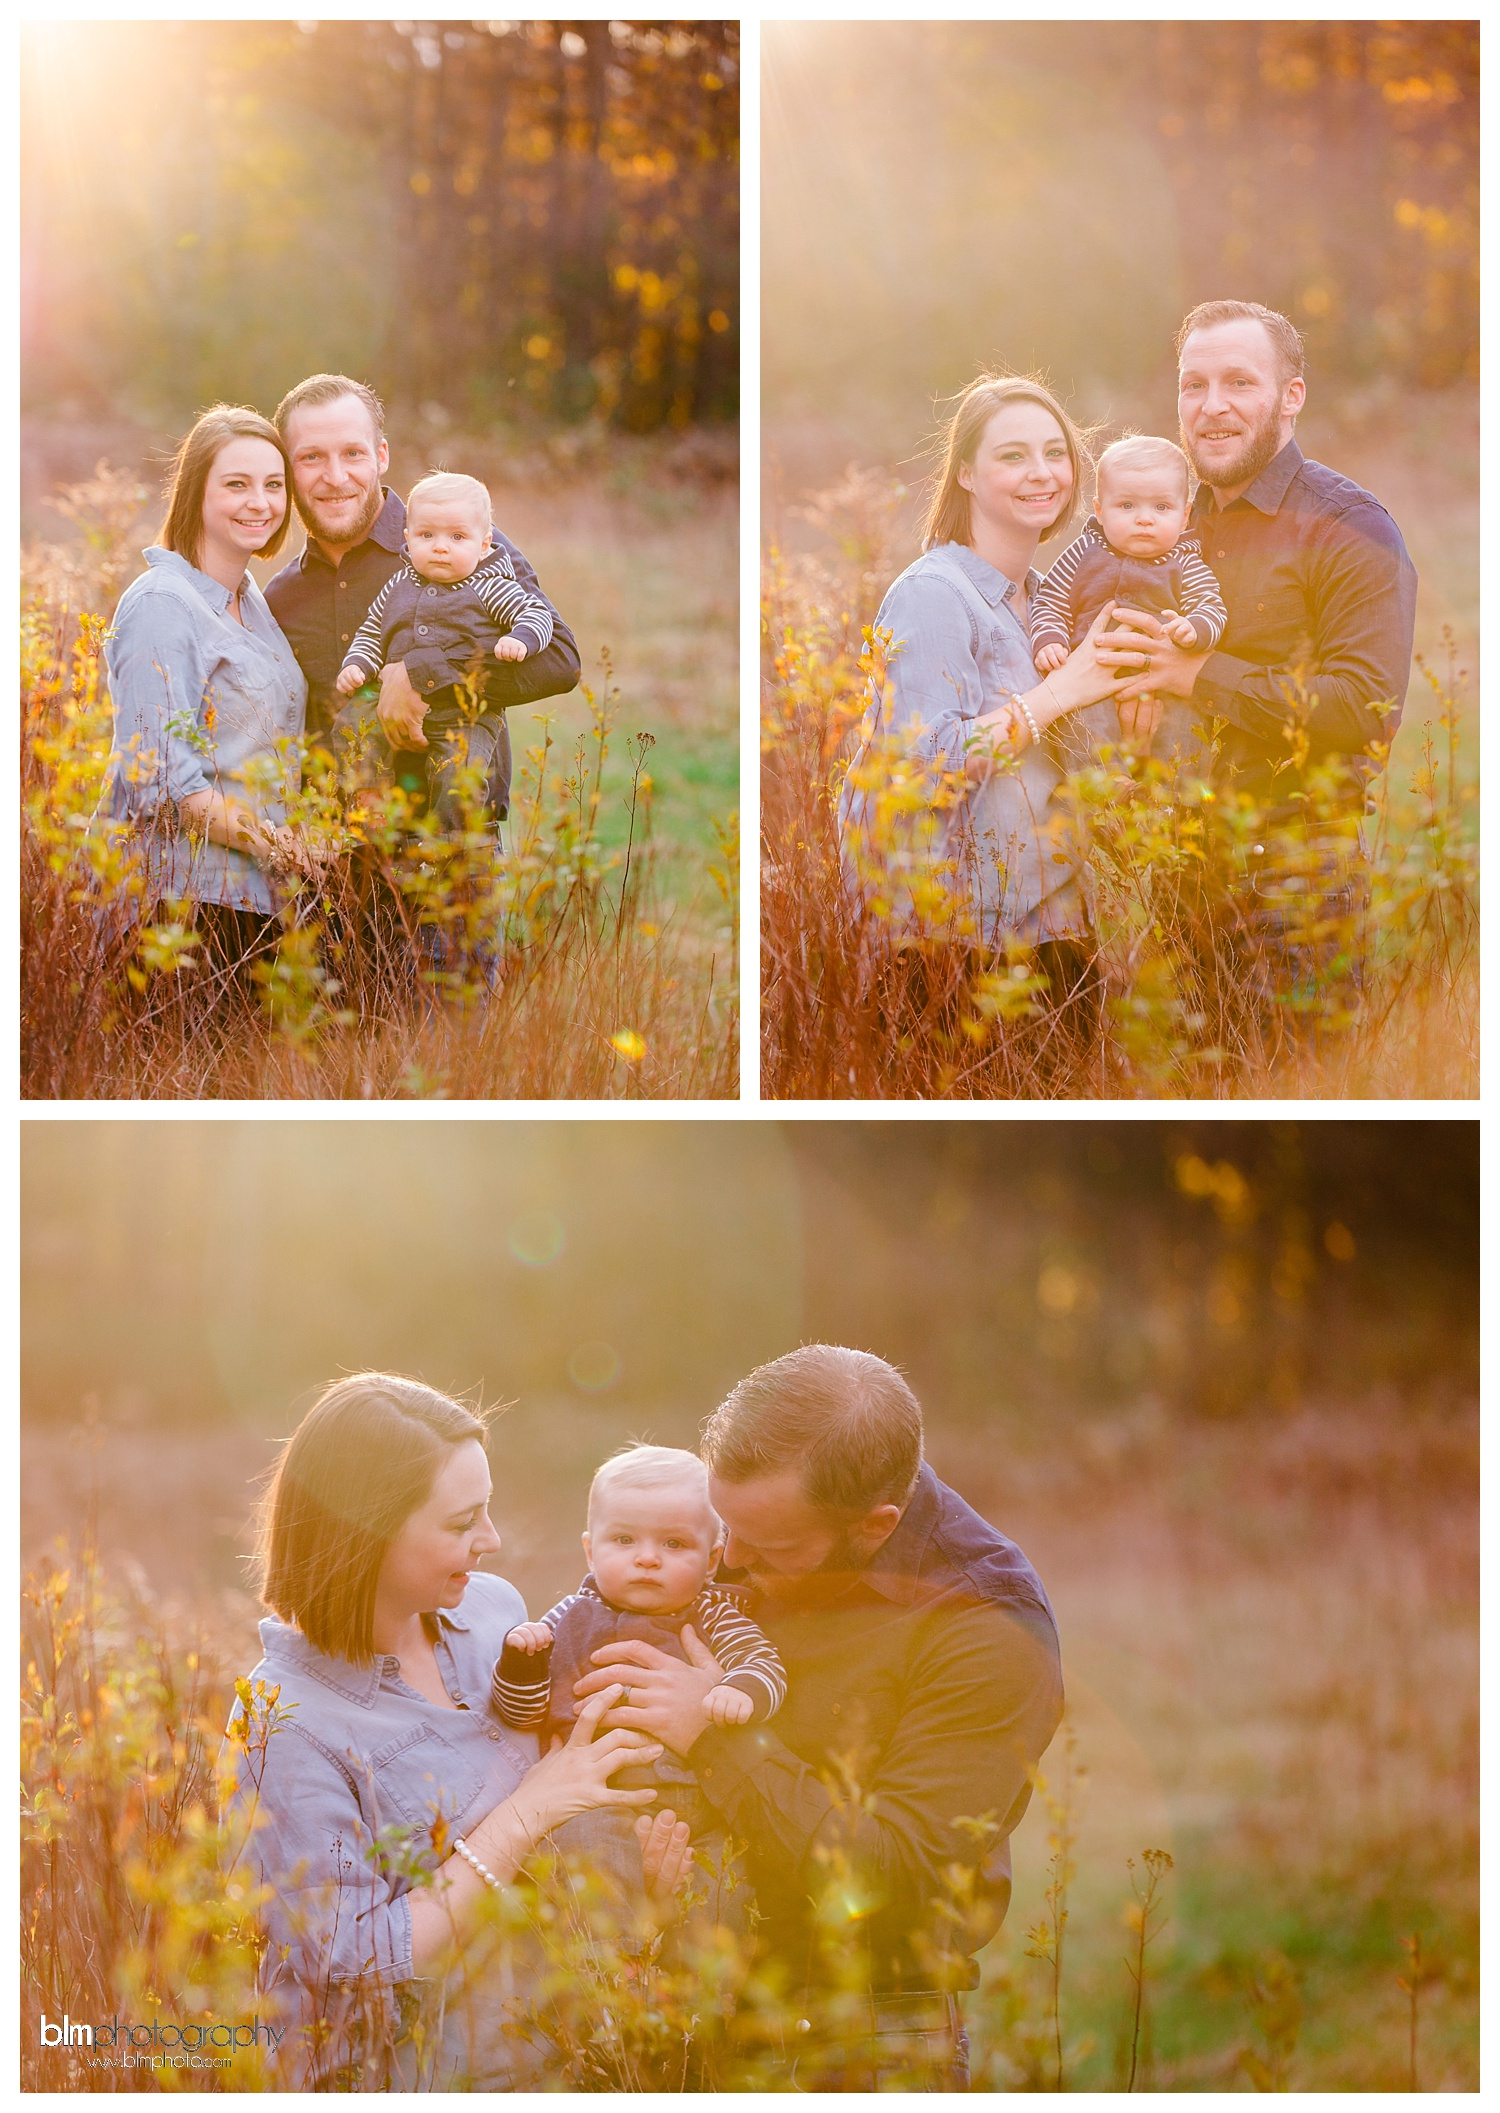 BLM,Brianna Morrissey,Brie Morrissey,Buddy,Candid,Family,Family Photography,Family Portraits,Kathleen,Lifestyle,Lifestyle Family Photography,Natural Light,Newton,Newton-Family,Oct,October,Outdoor Photography,Photo,Photographer,Photography,www.blmphoto.com/contact,©BLM Photography 2016,